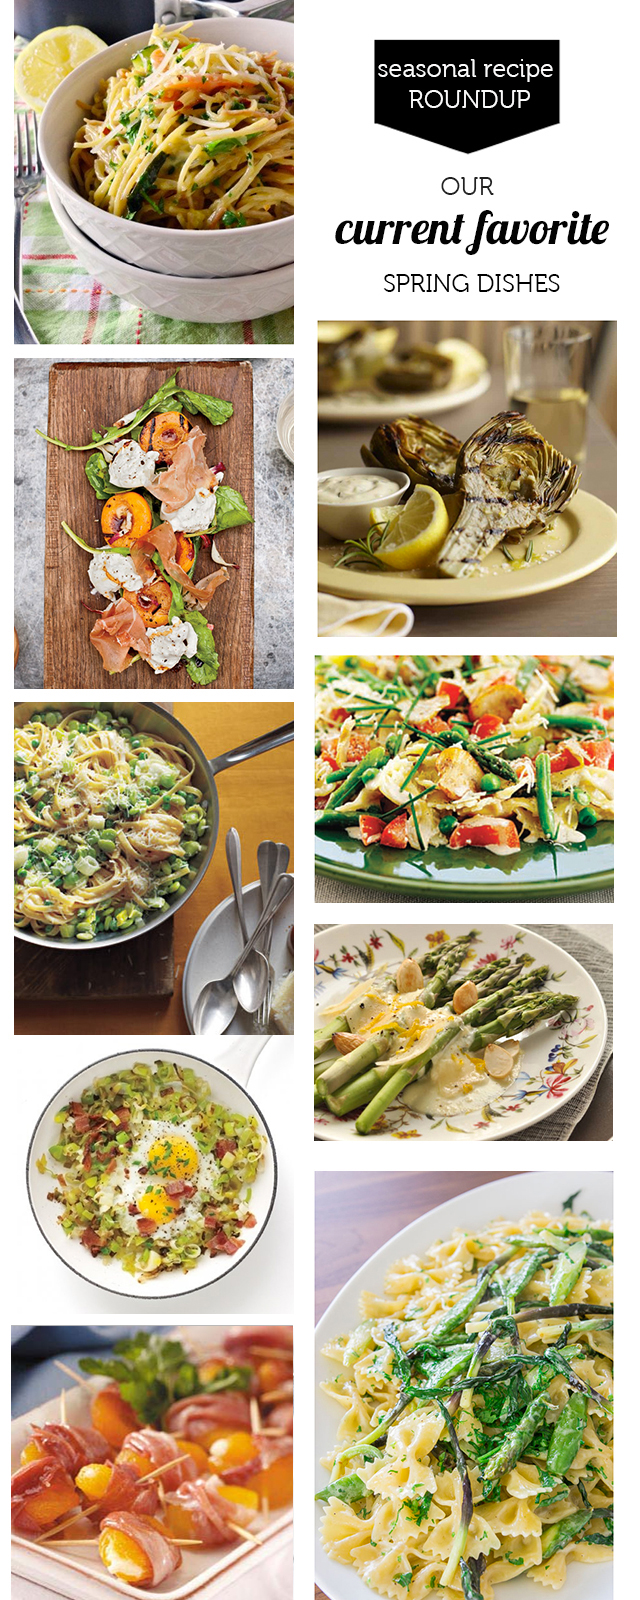 The best recipes for families using fresh spring produce - the Springtime Pasta Primavera is epic!